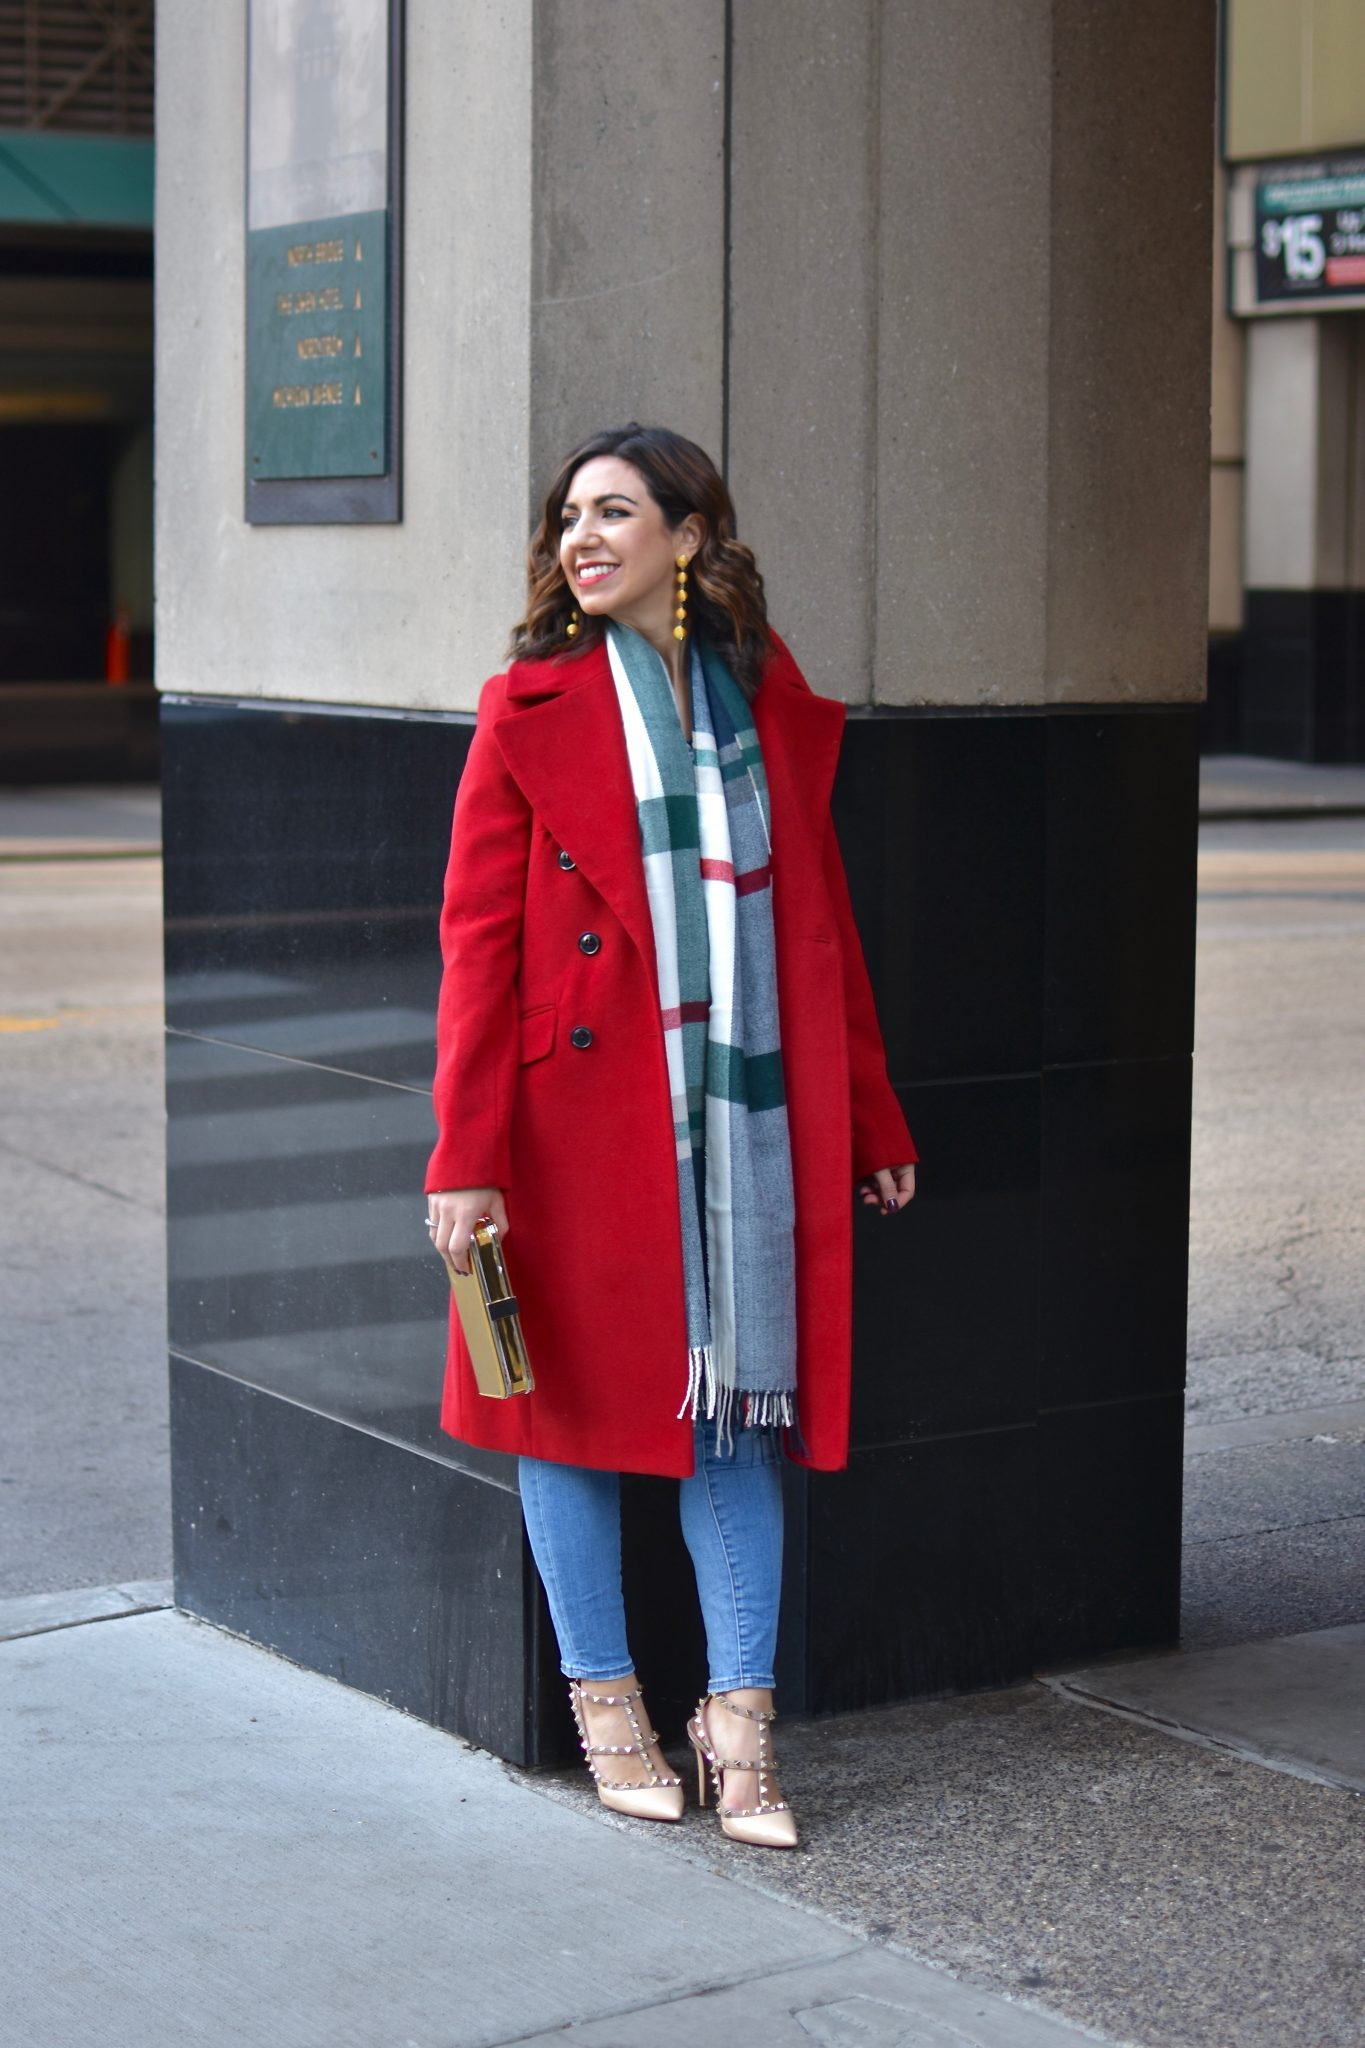 Lifestyle blogger Roxanne of Glass of Glam wearing a red ASOS coat, Valentino rockstud heels, a plaid scarf, and Madewell denim | What Being Jewish at Christmas is Like featured by top Chicago lifestyle blogger, Glass of Glam